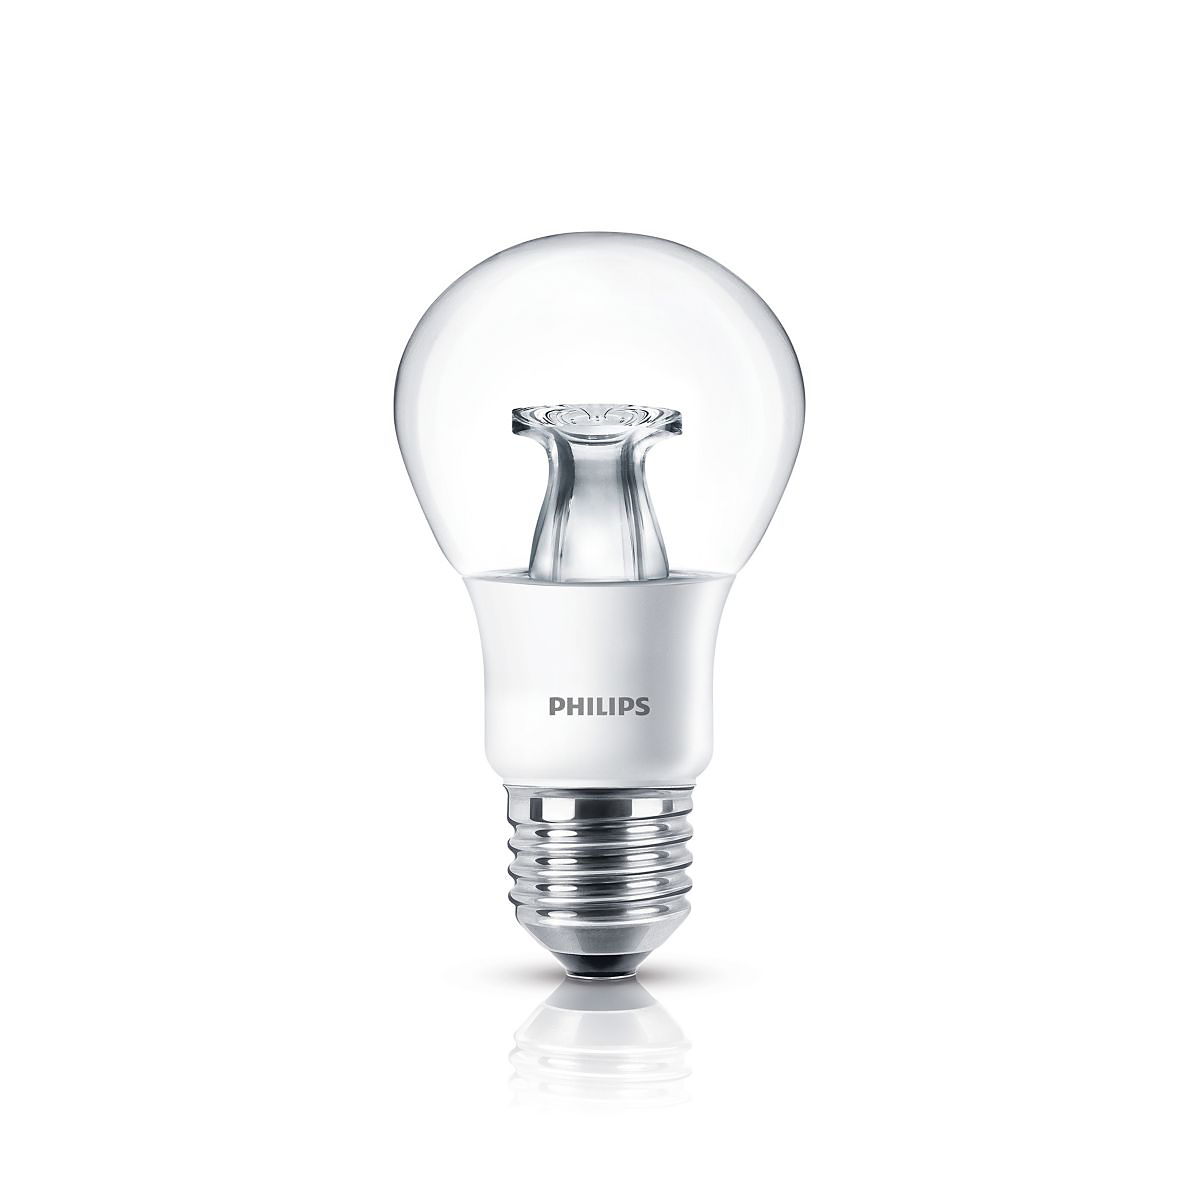 MASTER LEDbulb E27B22 230V Gradable Lampes LED Bulbs Philips